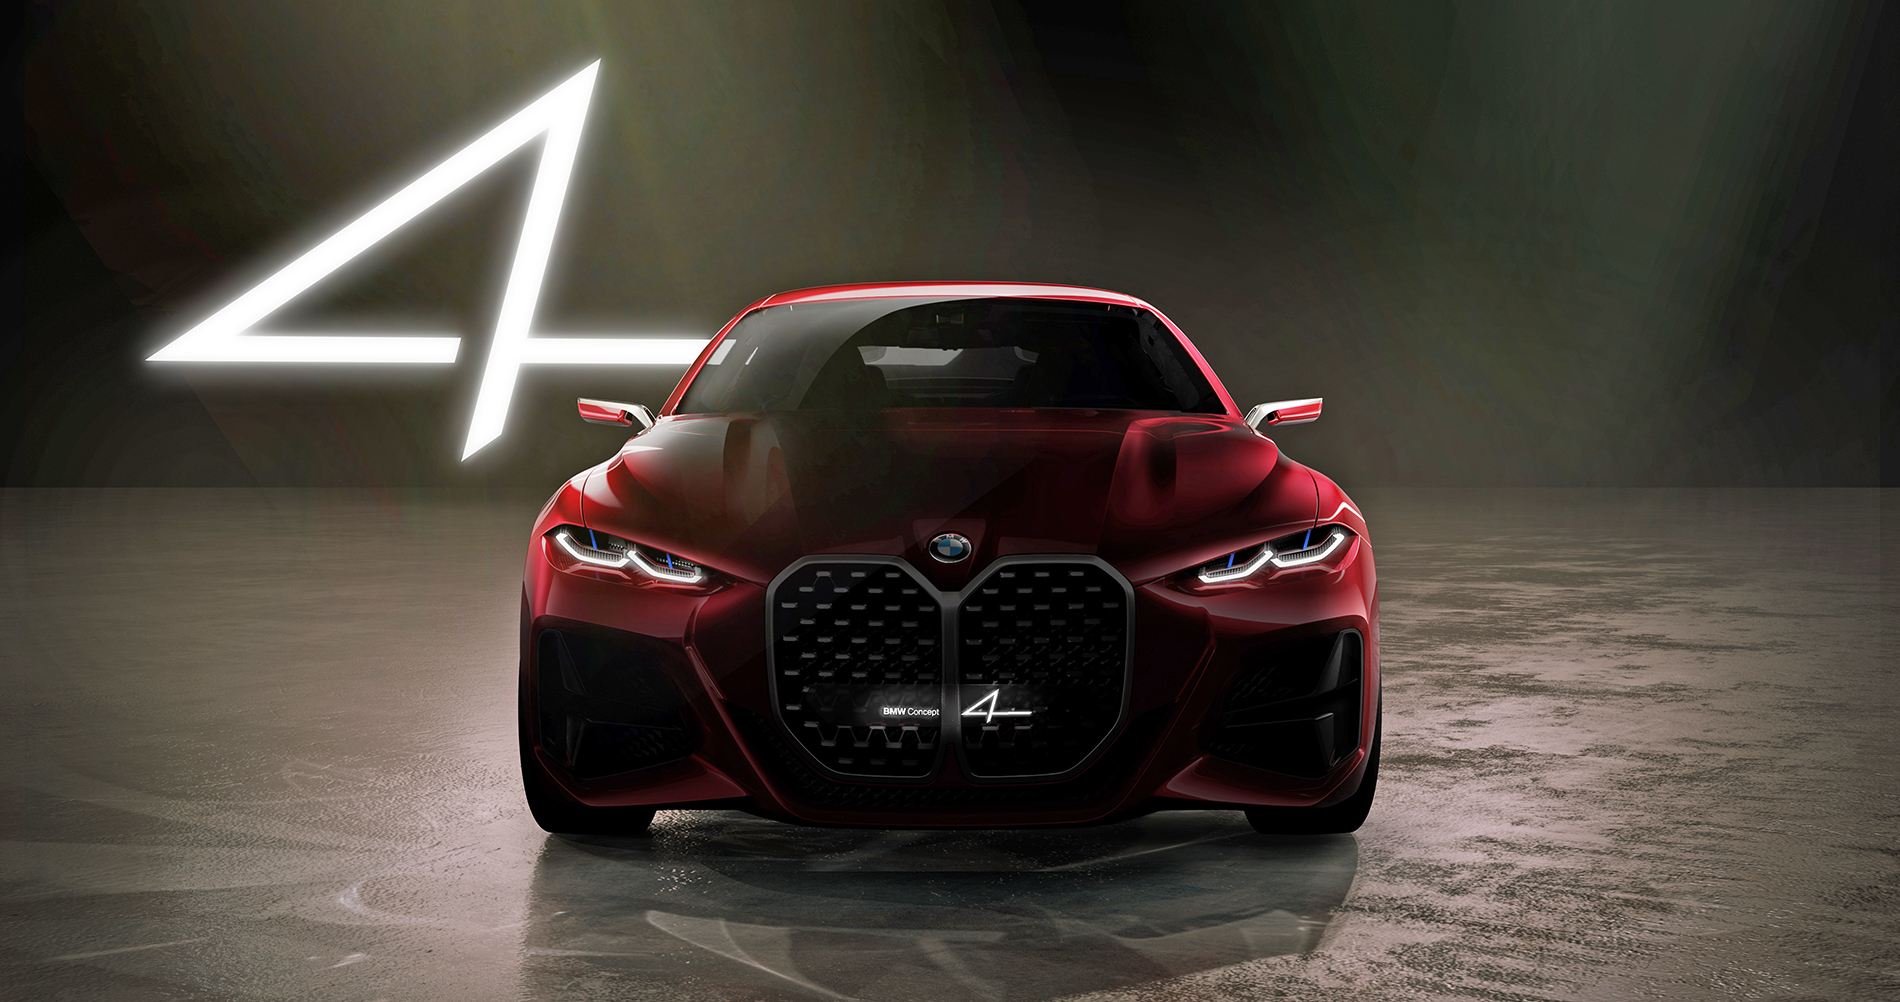 Bmw 4 Series >> Presenting The Bmw 4 Series Coupe Concept G22 G20 Bmw 3